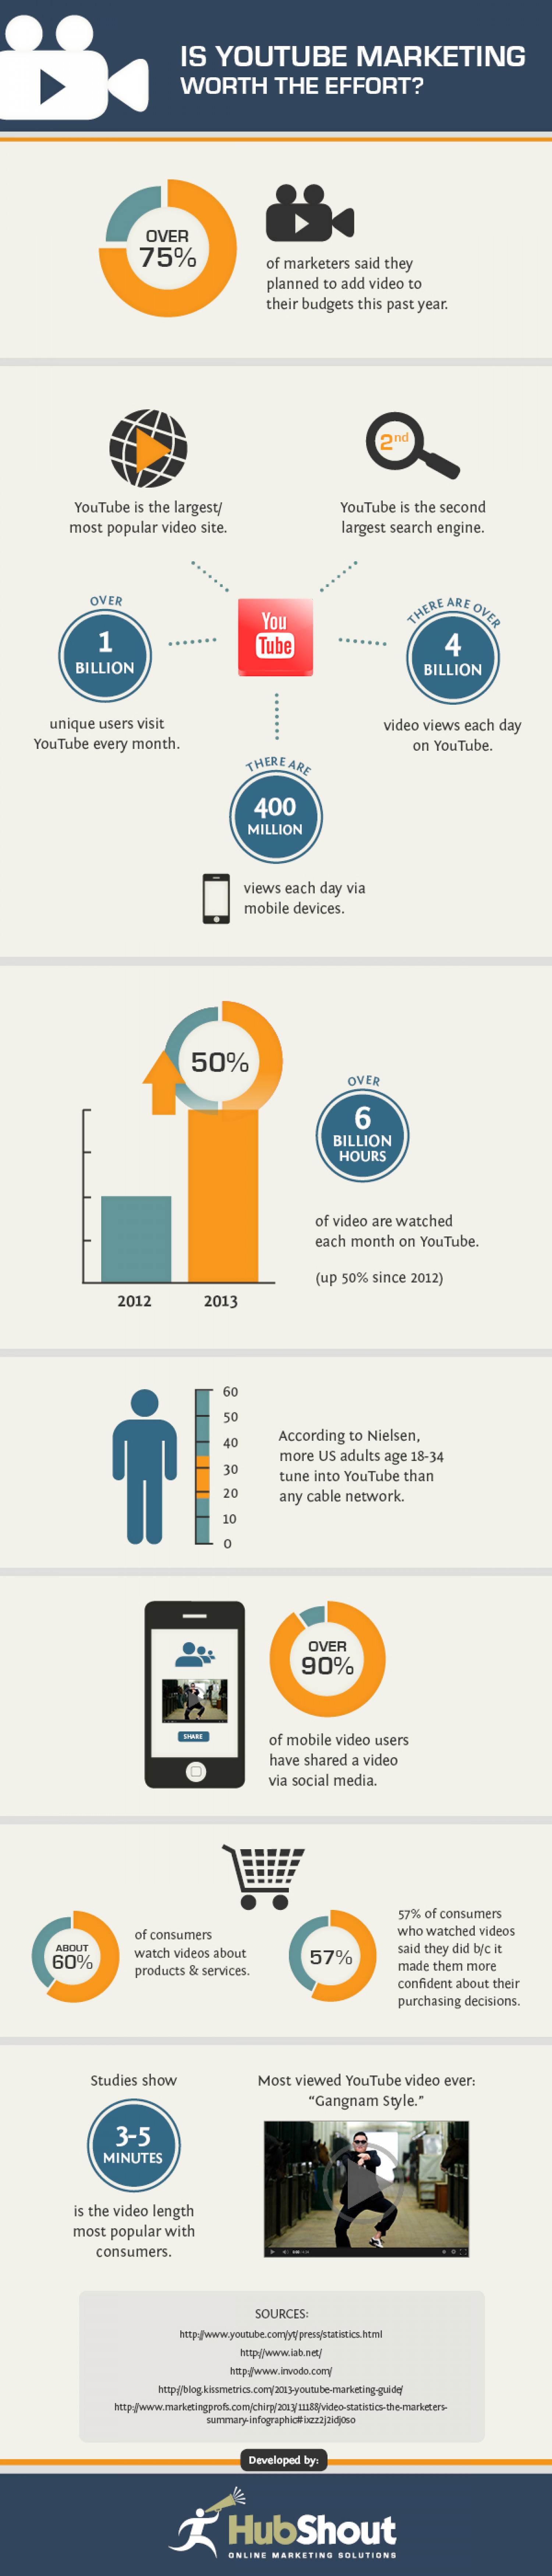 Is YouTube Marketing Worth the Effort? Infographic